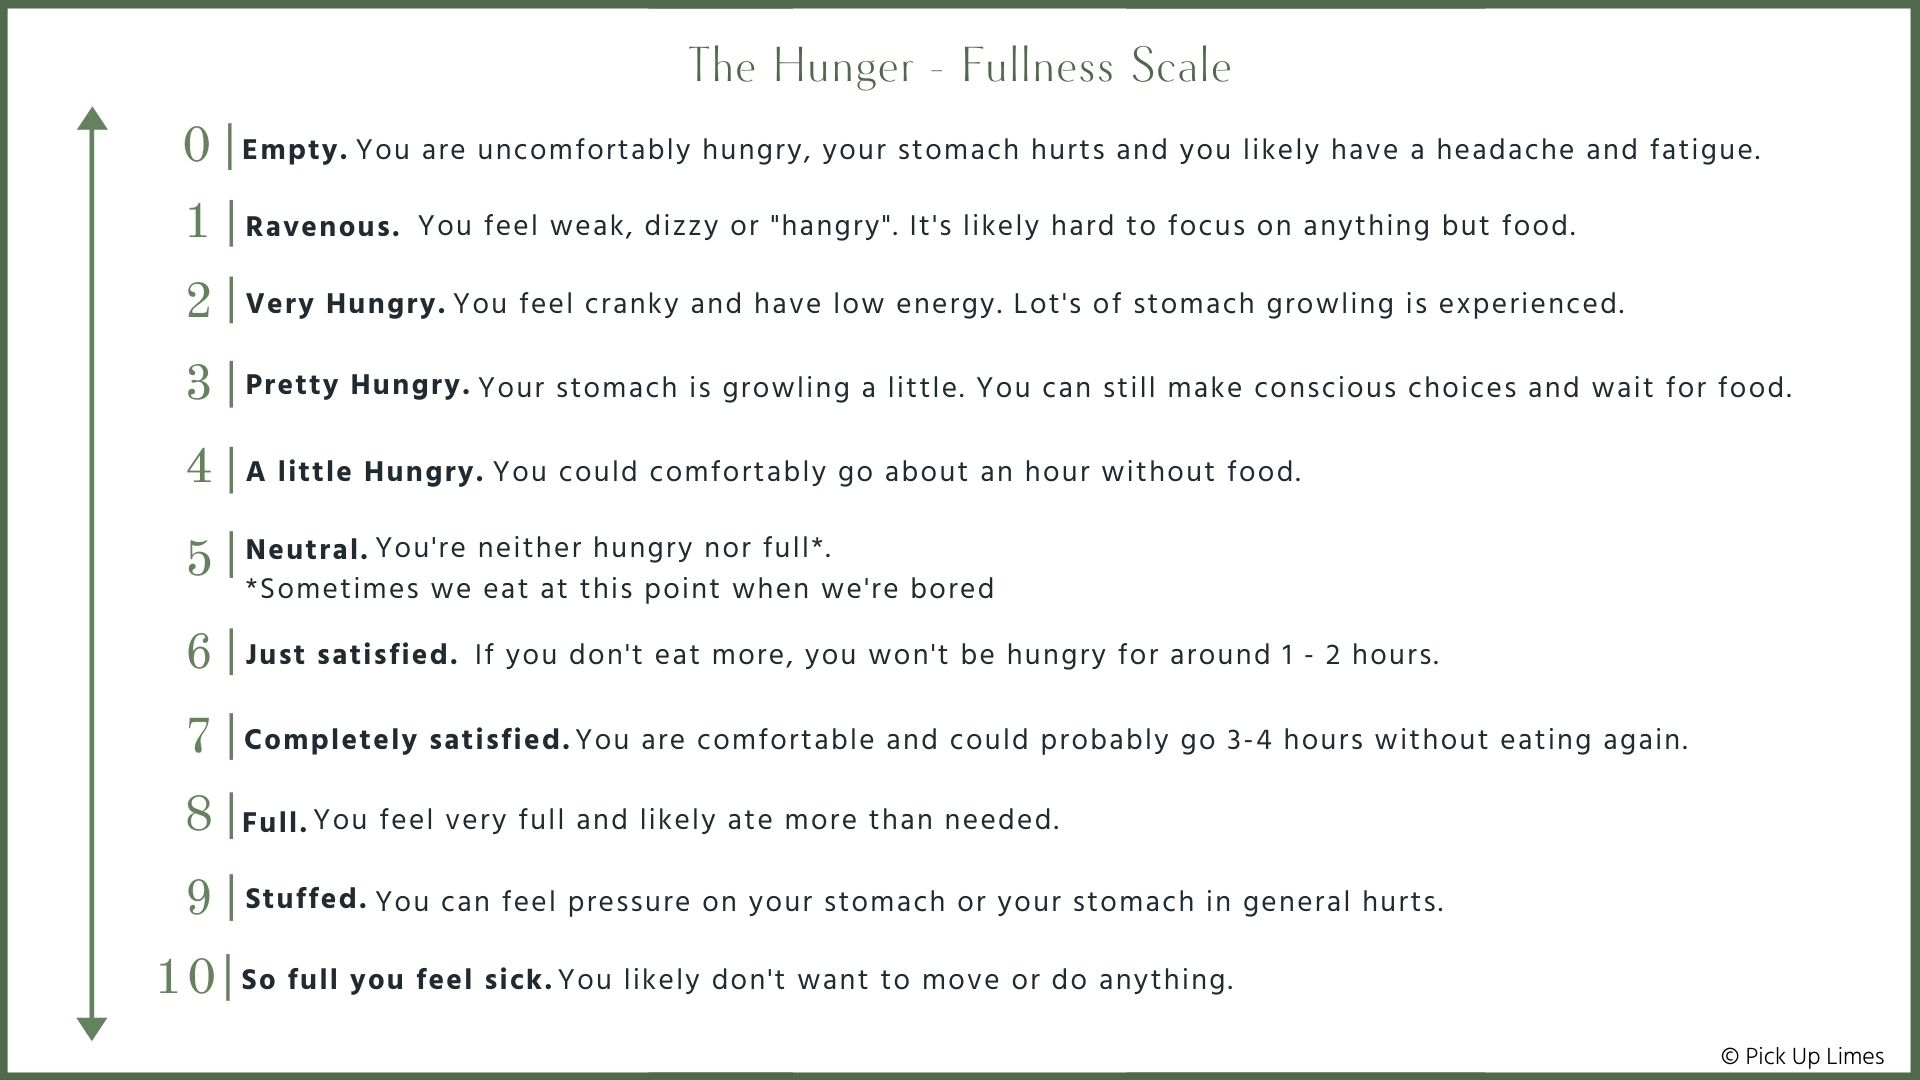 hunger-fullness scale 1-10